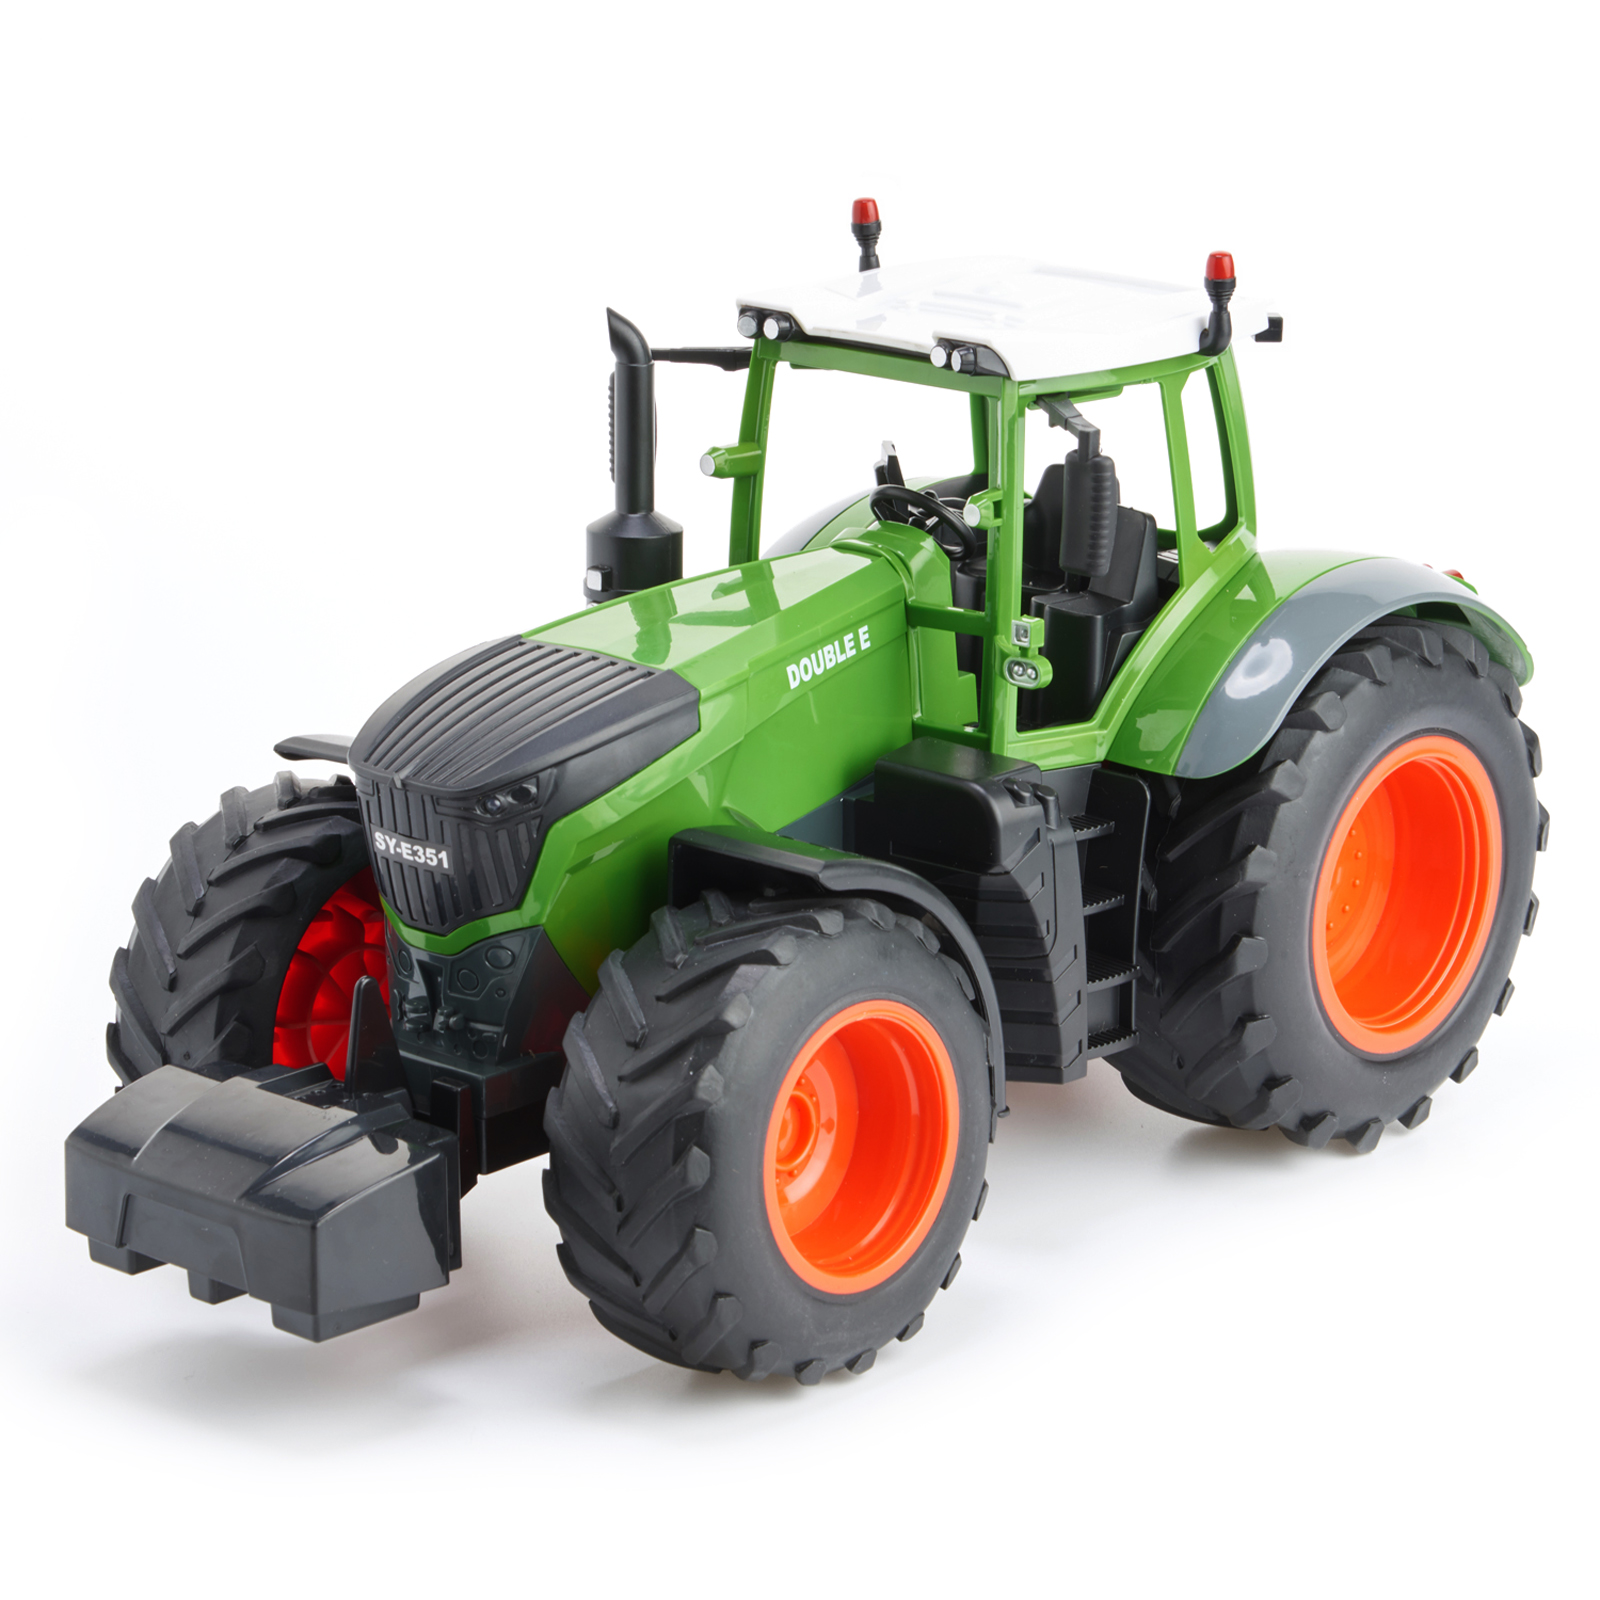 Cheerwing 1:16 RC Farm Tractor 2.4Ghz Simulation appearance Auto-coding Monster Tread